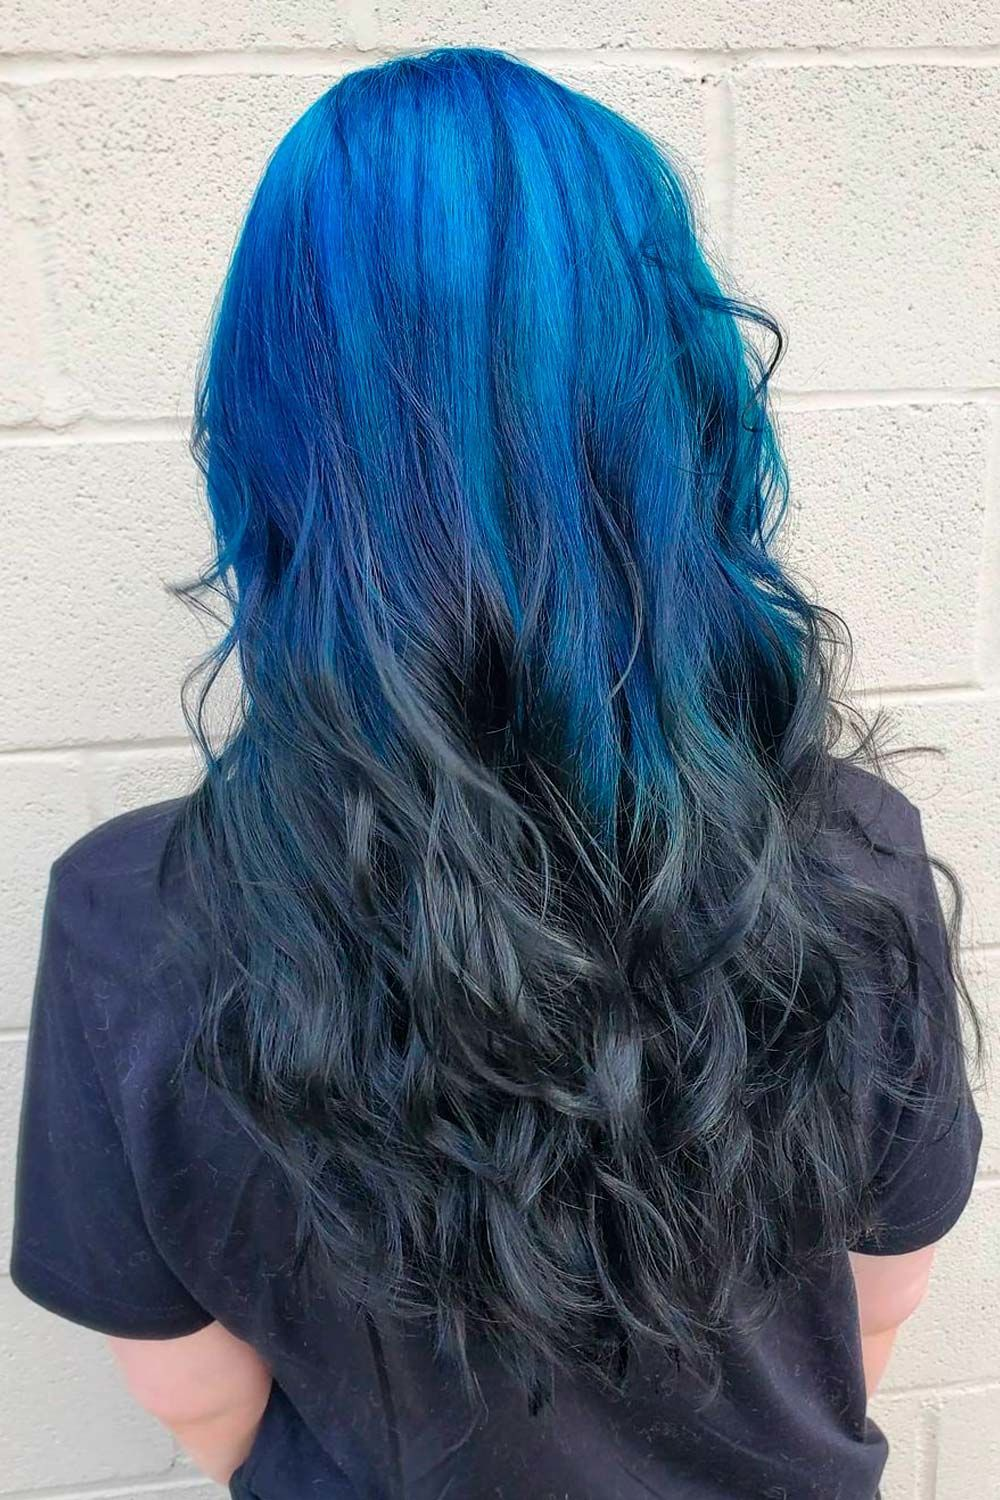 Extra Bright Ideas With Black And Colorful Ombre Reverse Hair, ombre reverse, Ombre Hairstyles for Long Hair